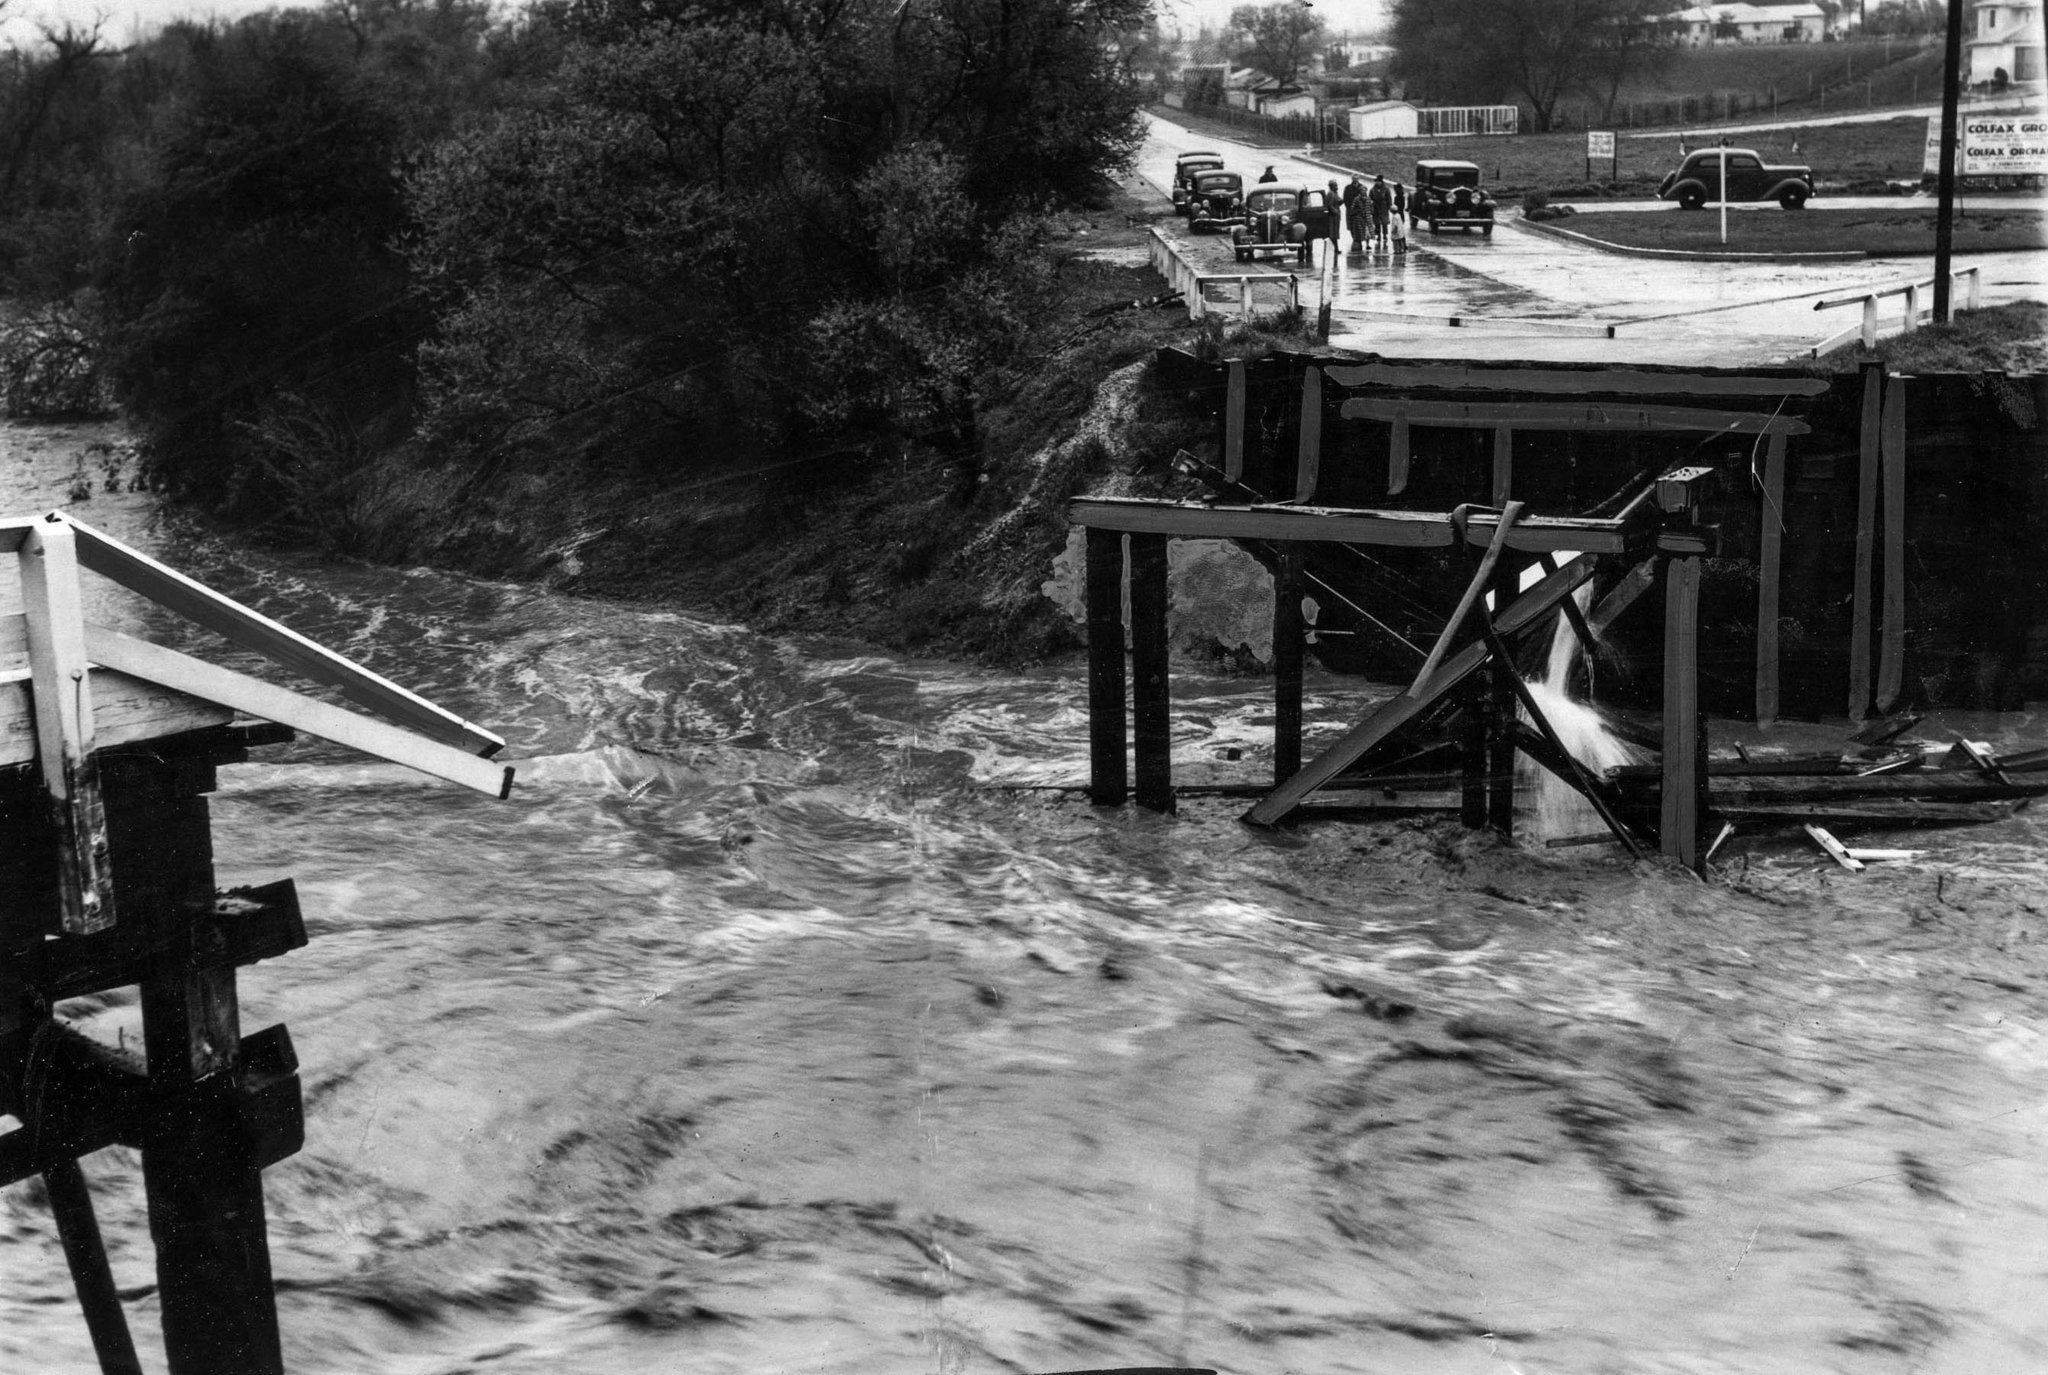 March 2, 1938: Washed out bridge at Colfax Avenue over Los Angeles River in Studio City. This photo